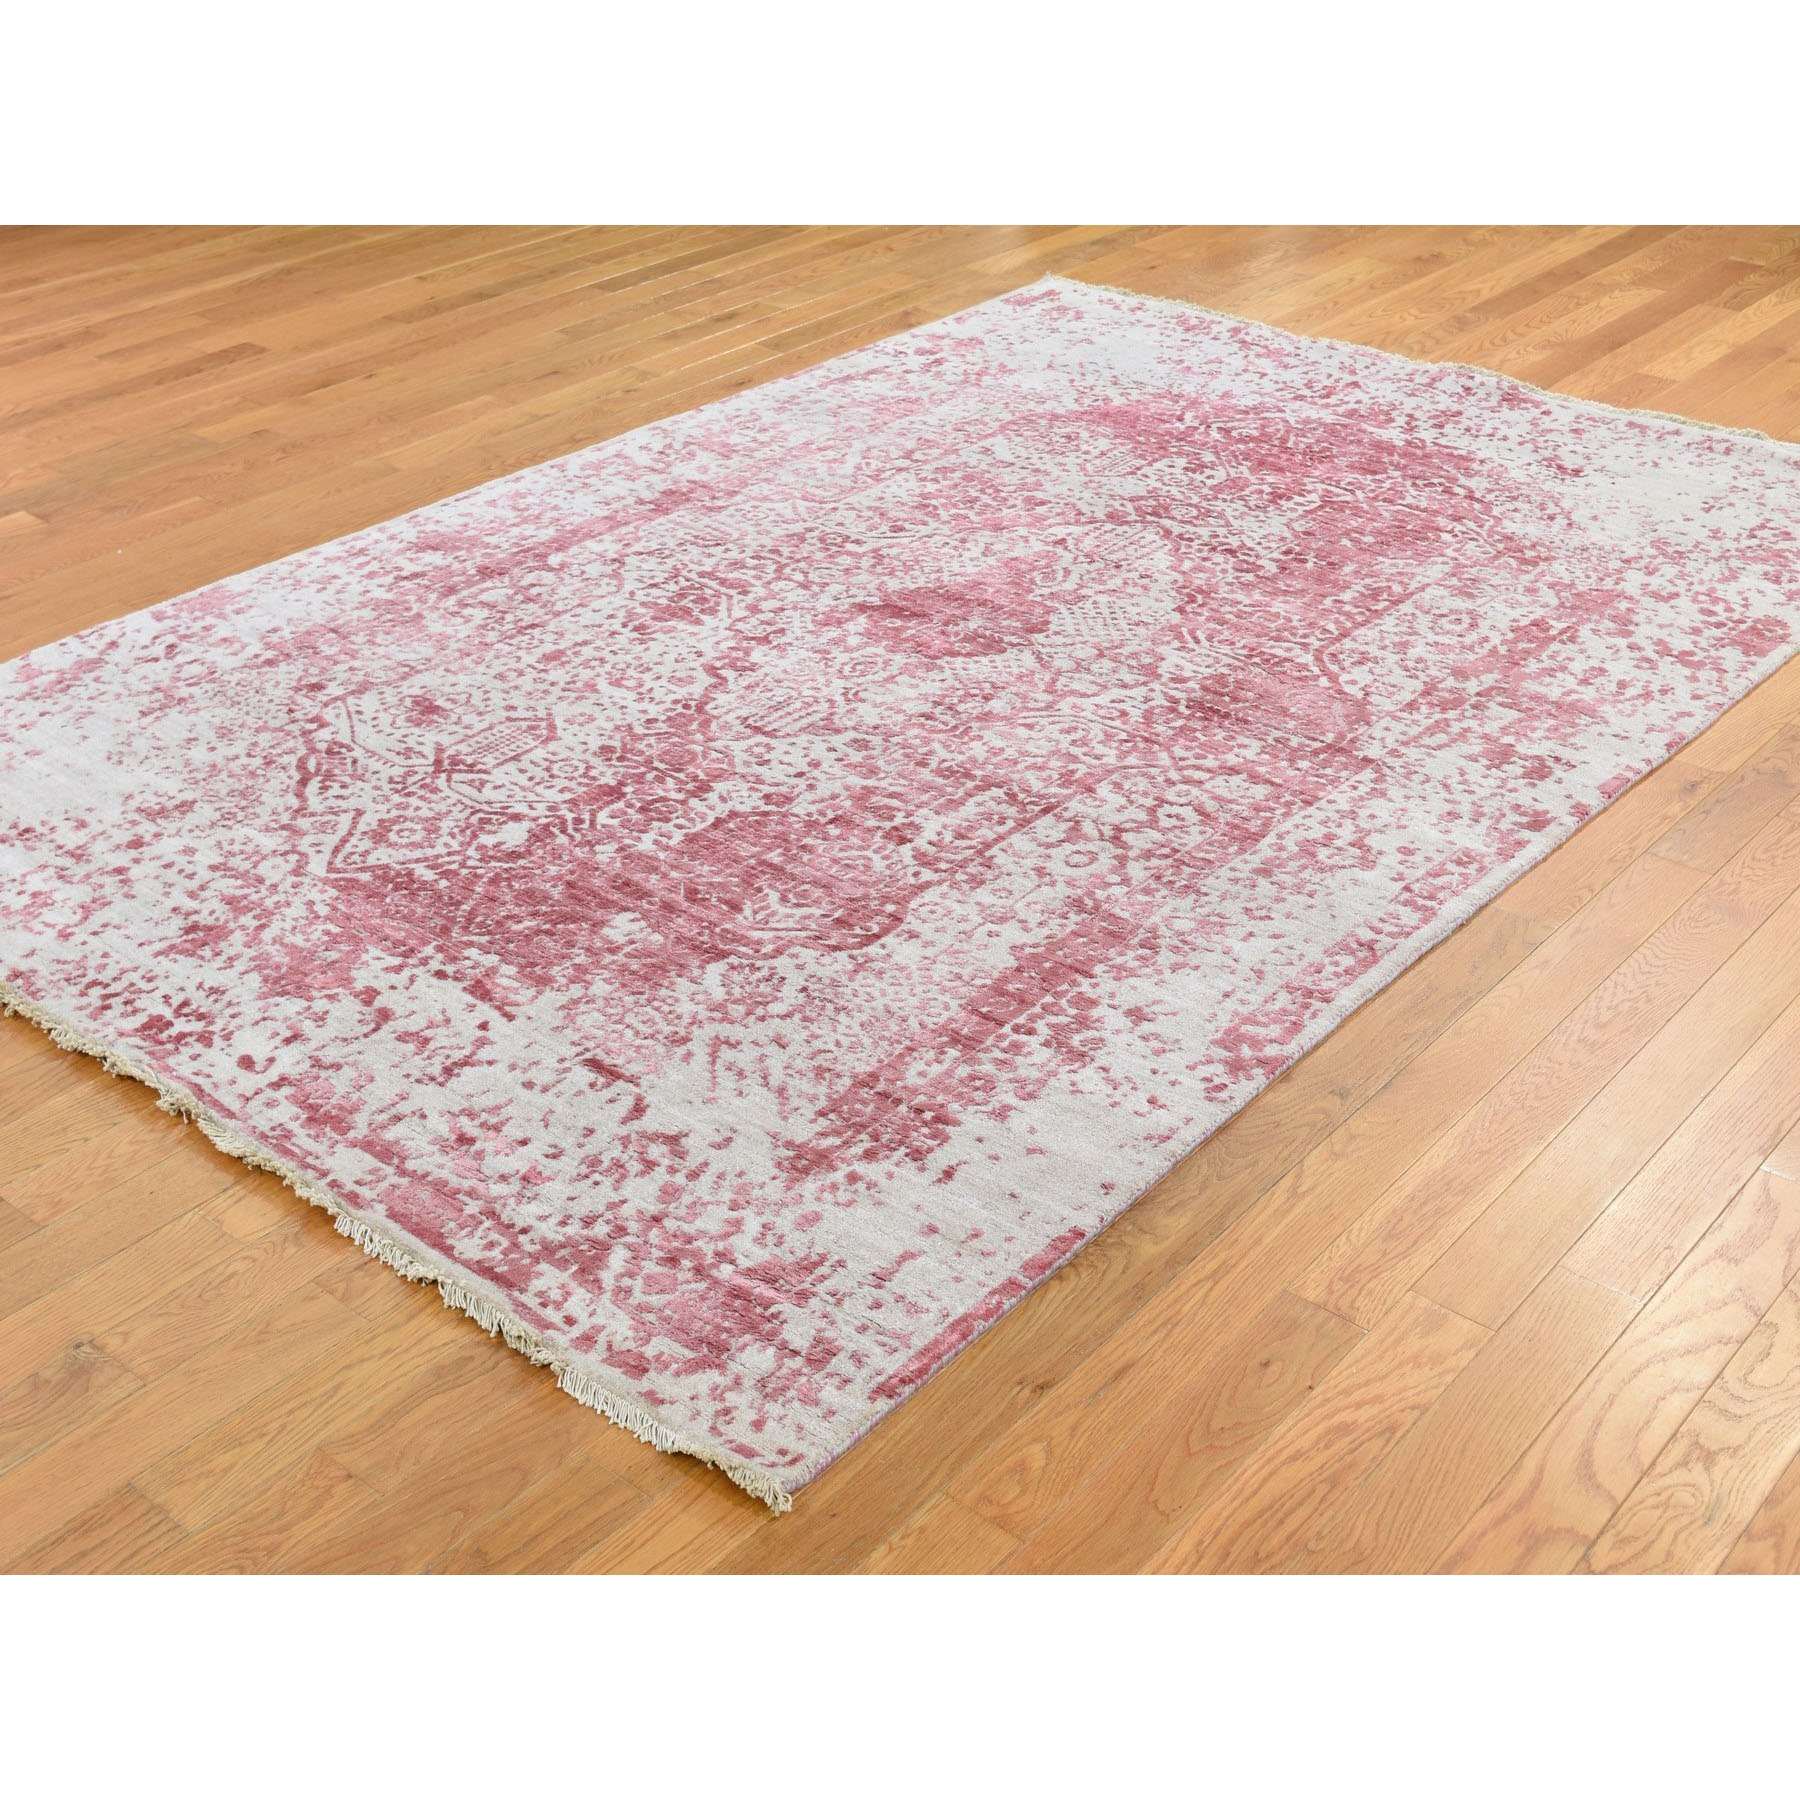 """6'x8'10"""" Pink Broken Persian Design Wool And Pure Silk Hand Knotted Oriental Rug"""